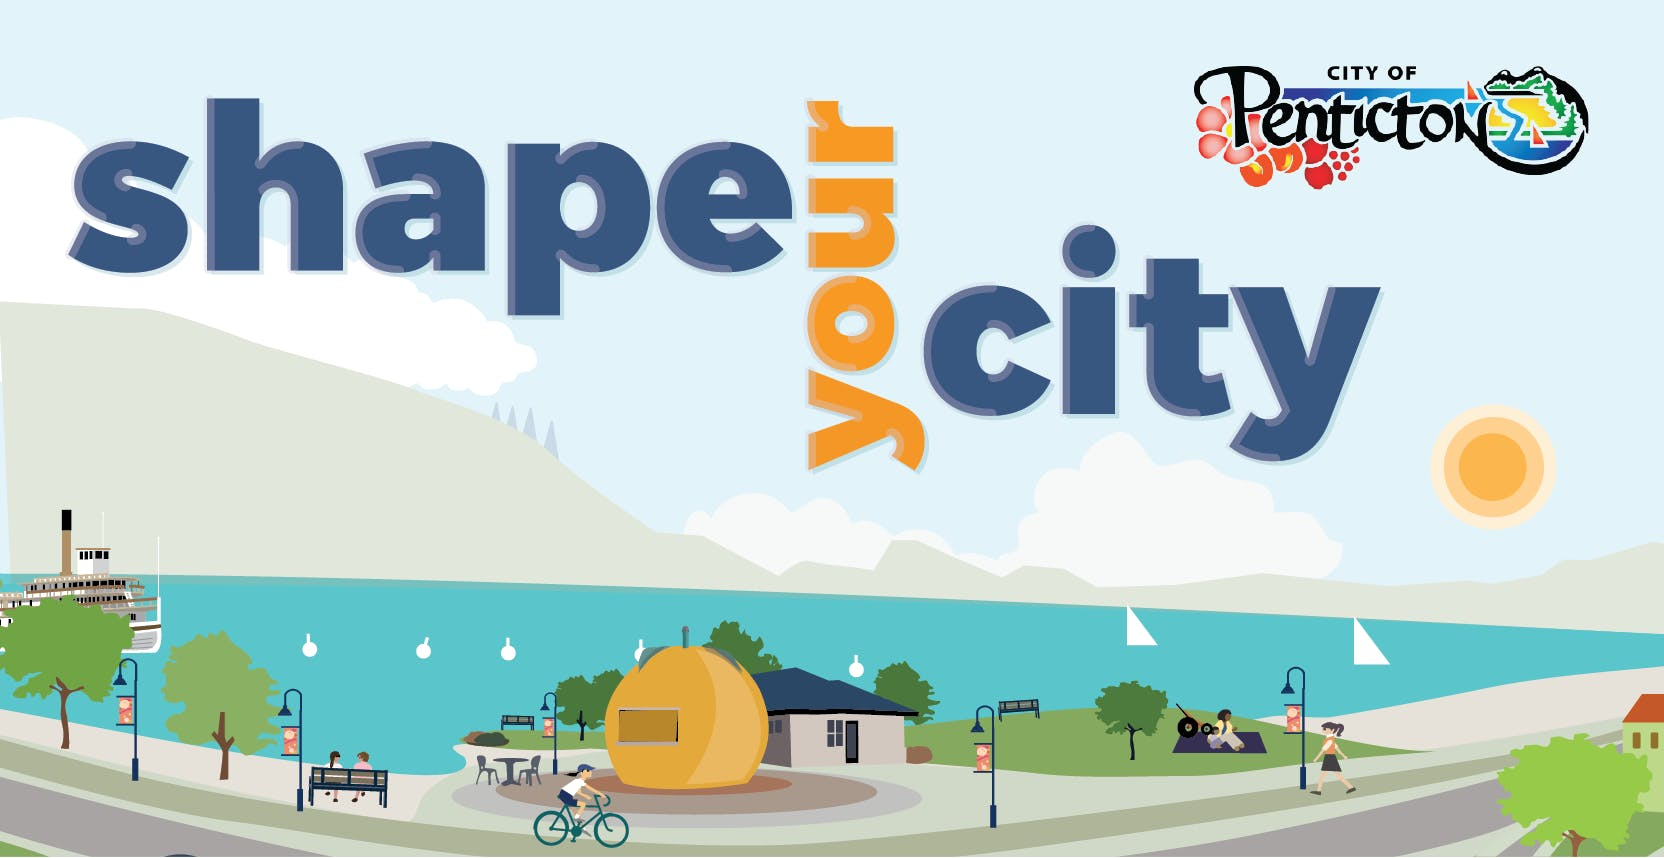 Shape Your City Penticton